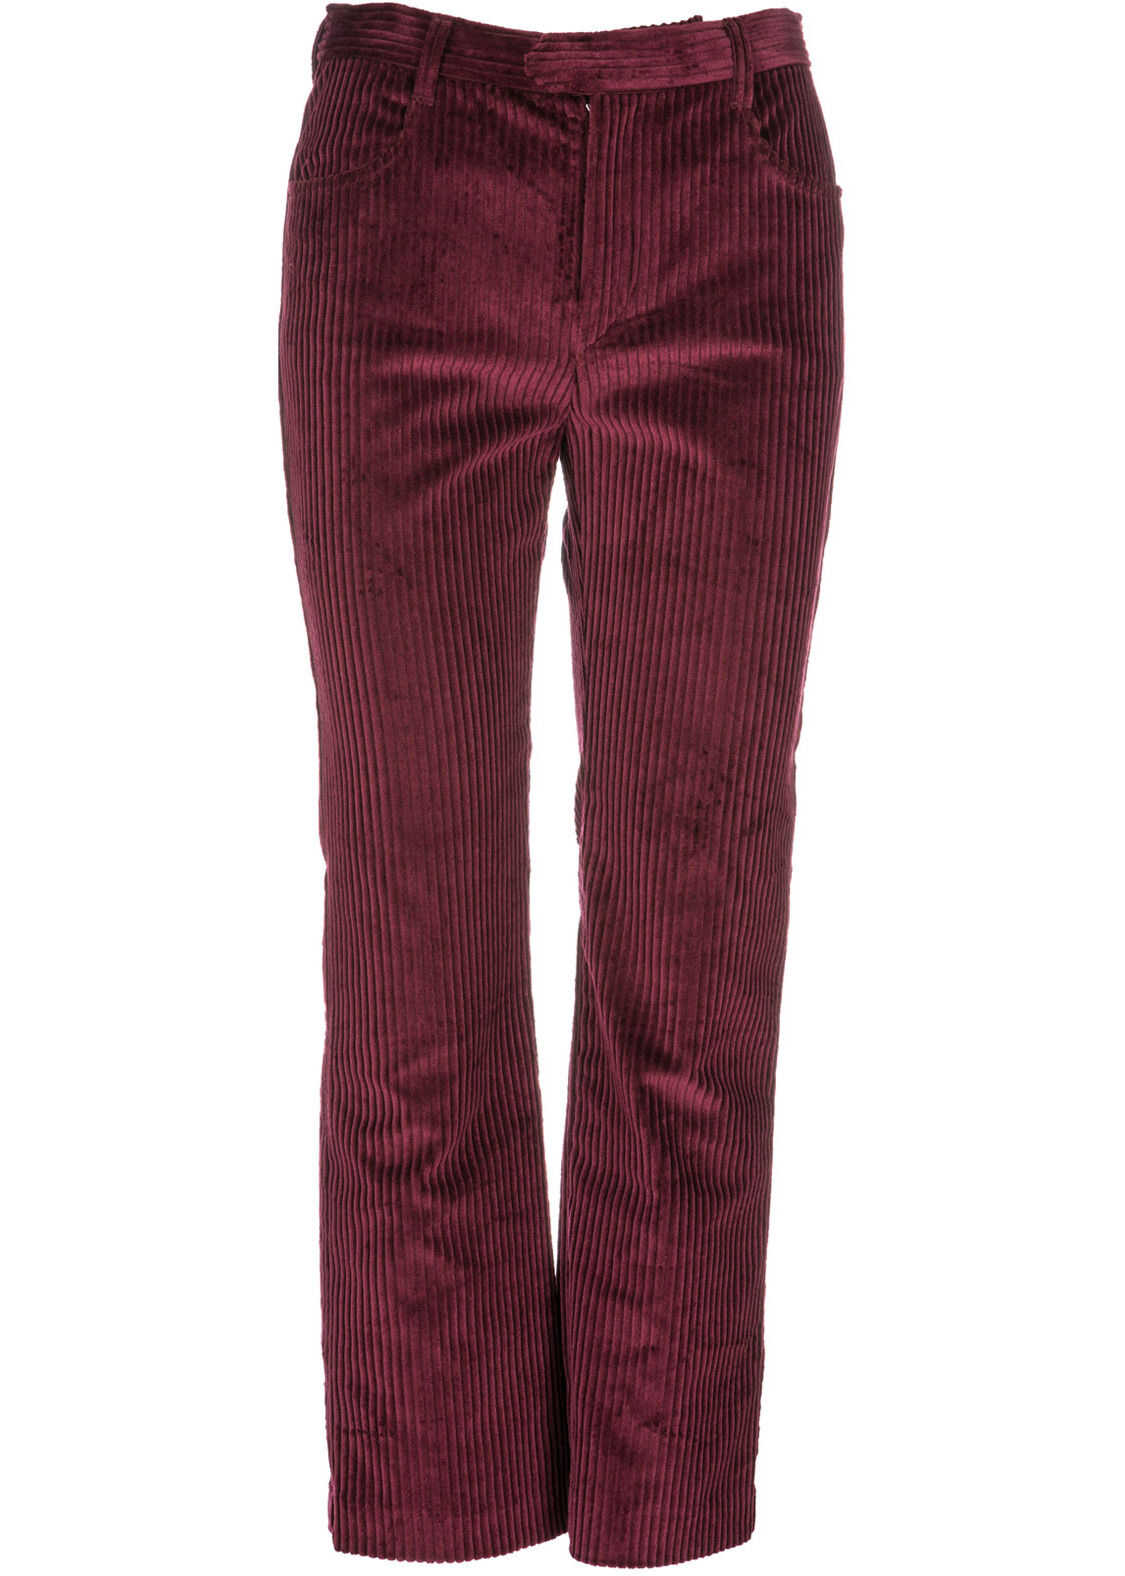 Isabel Marant Pants Meloy Red